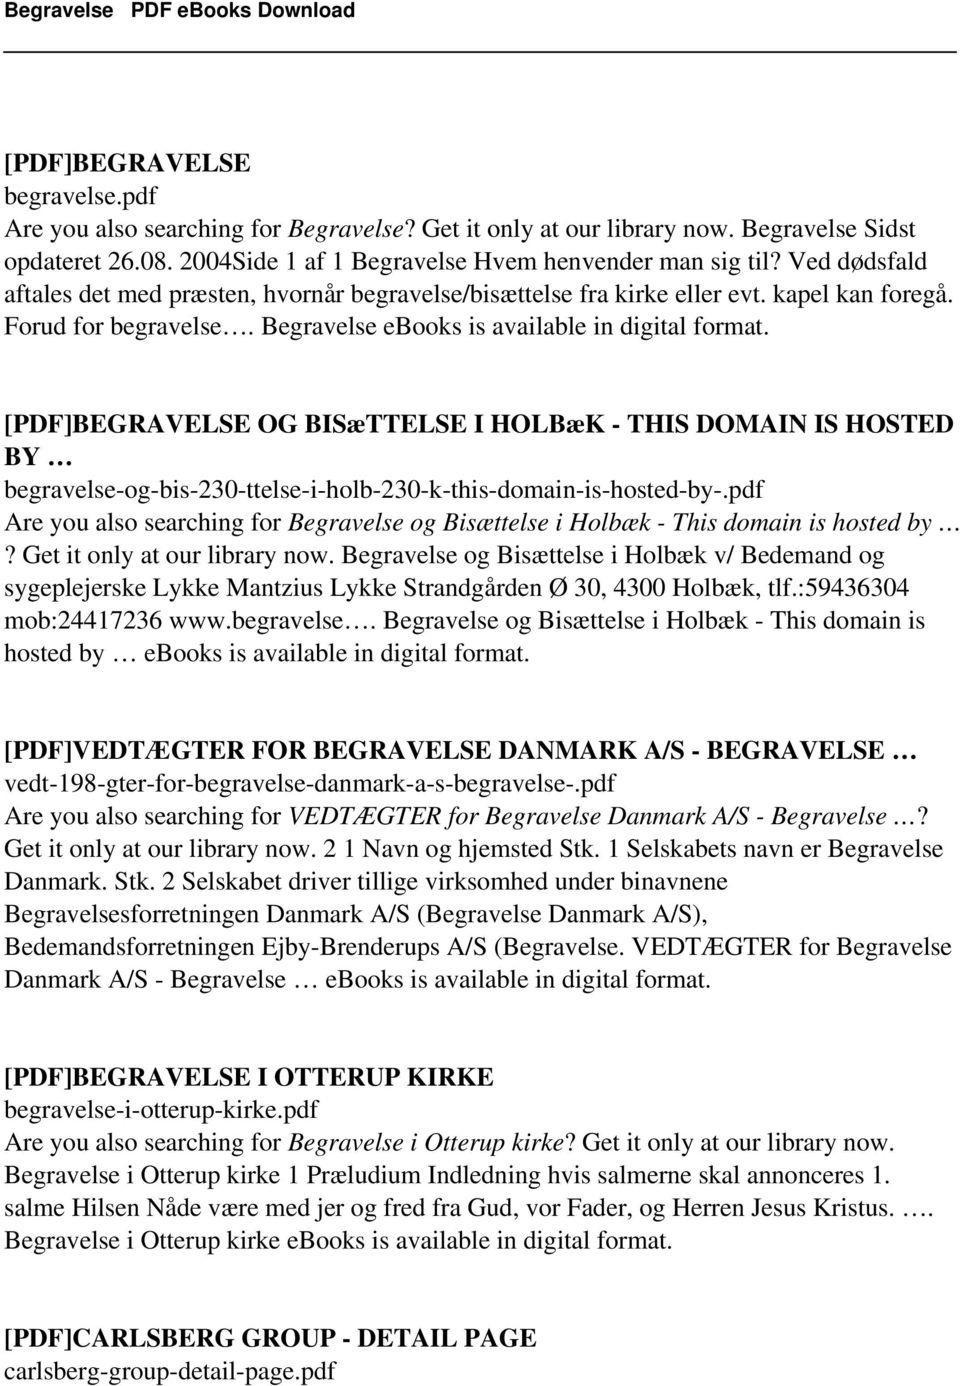 Begravelse ebooks is available in [PDF]BEGRAVELSE OG BISæTTELSE I HOLBæK - THIS DOMAIN IS HOSTED BY begravelse-og-bis-230-ttelse-i-holb-230-k-this-domain-is-hosted-by-.